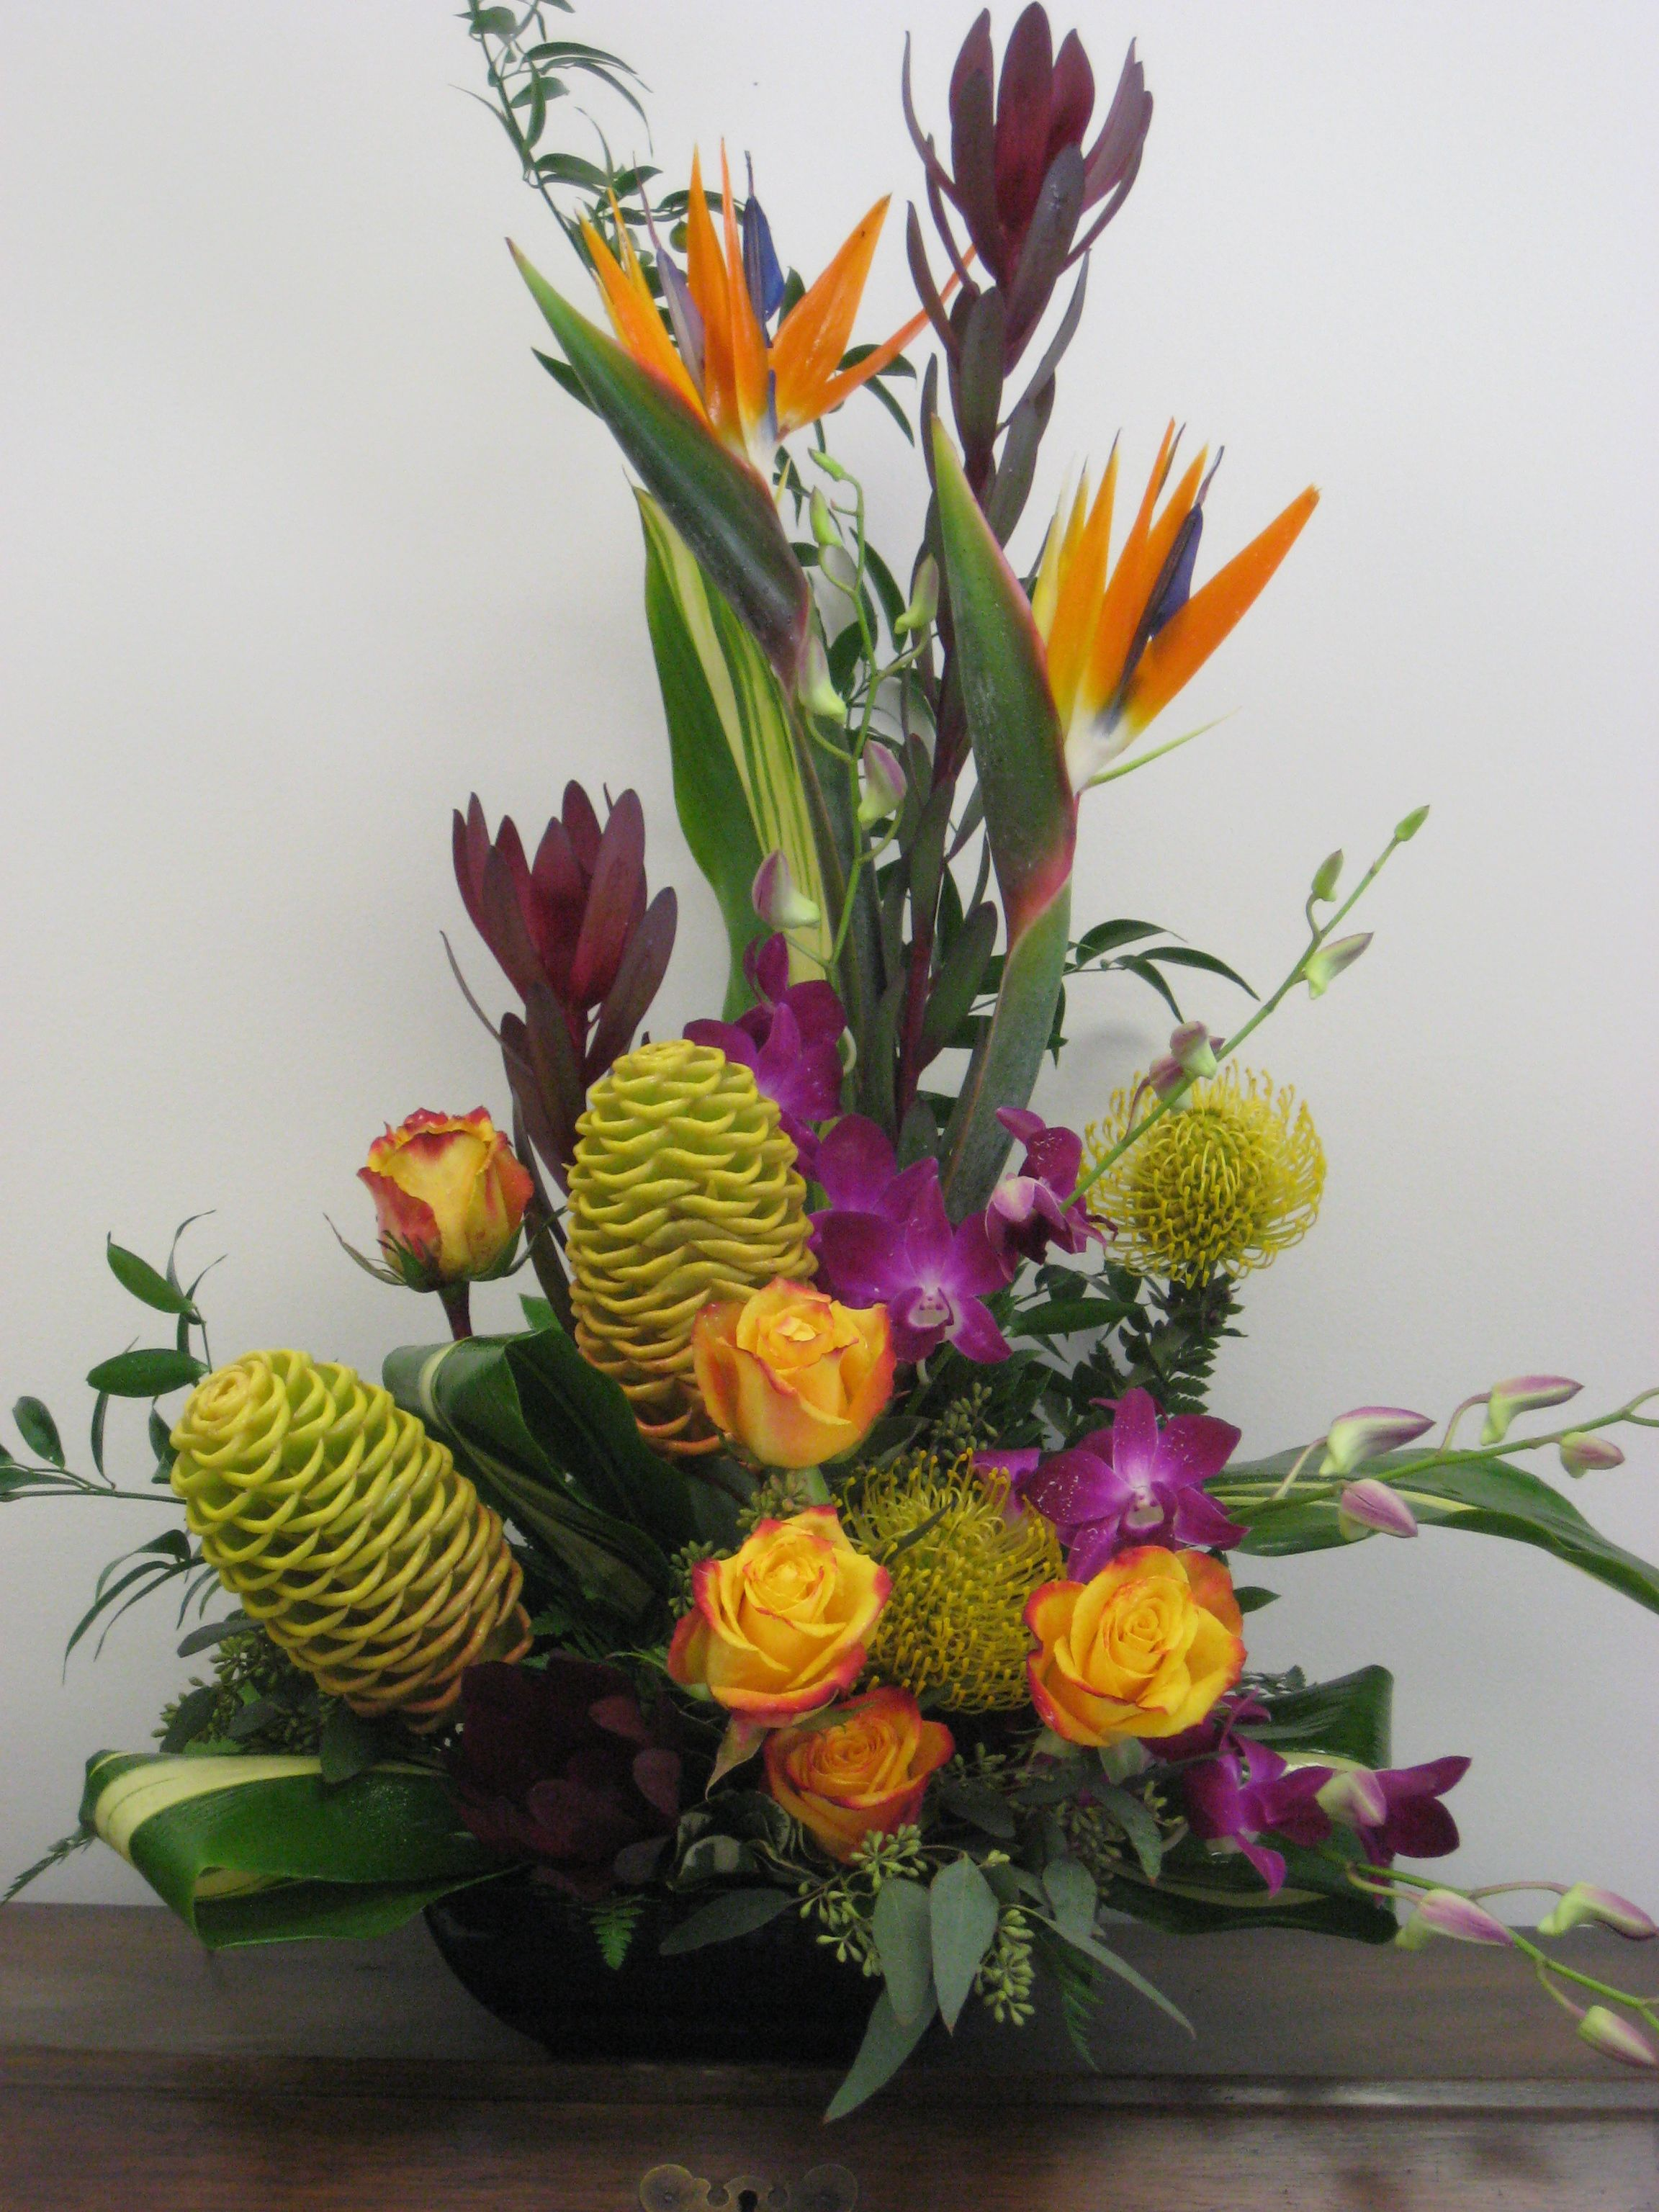 A striking color combination in tropicals - Beehive Ginger, Pincushion Protea, Dendrobium Orchids, Birds of Paradise and accented with the beautiful roses